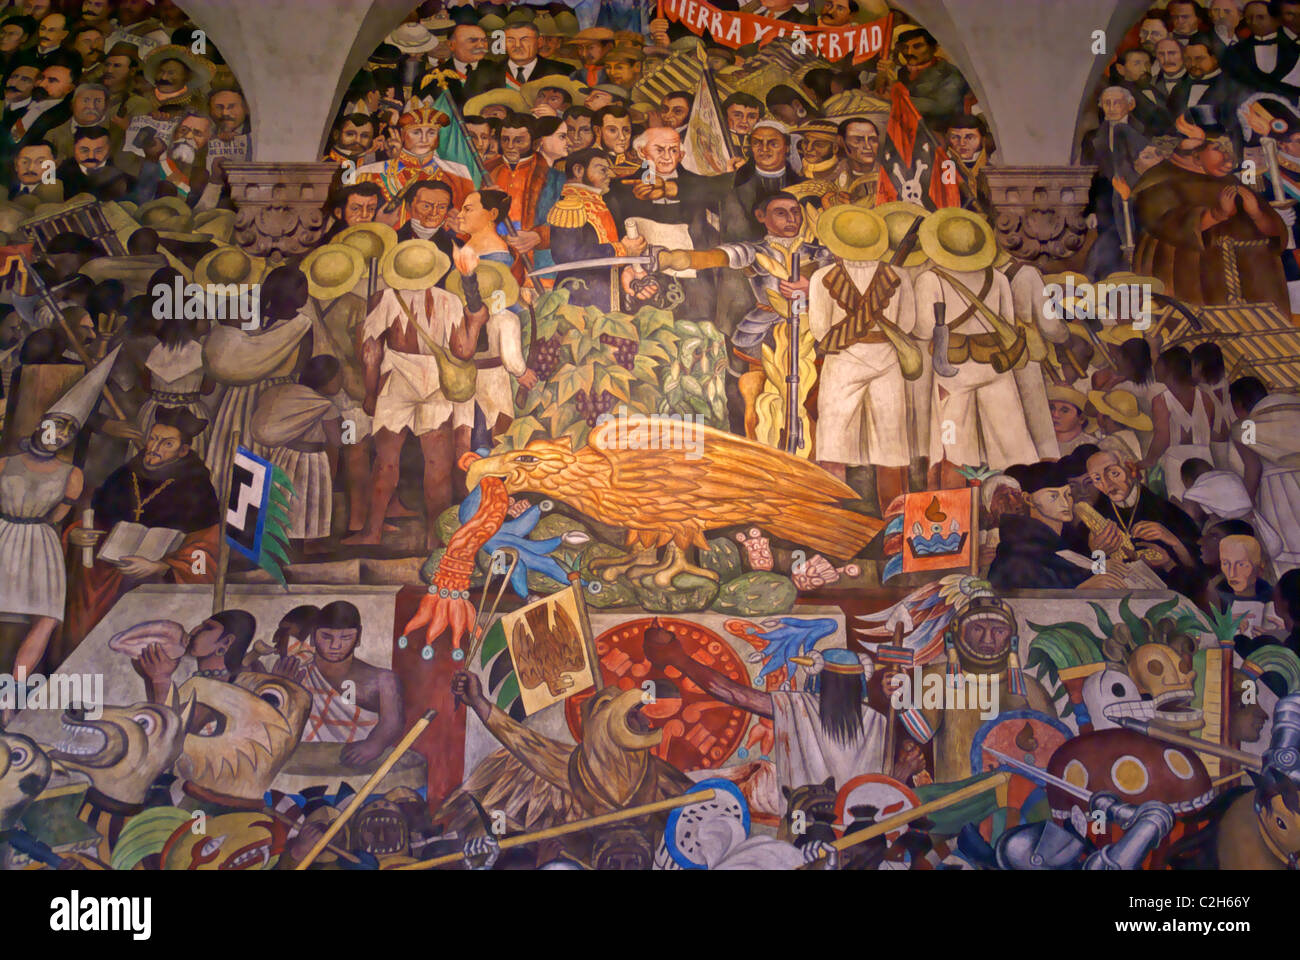 detail-of-mural-by-diego-rivers-depictin